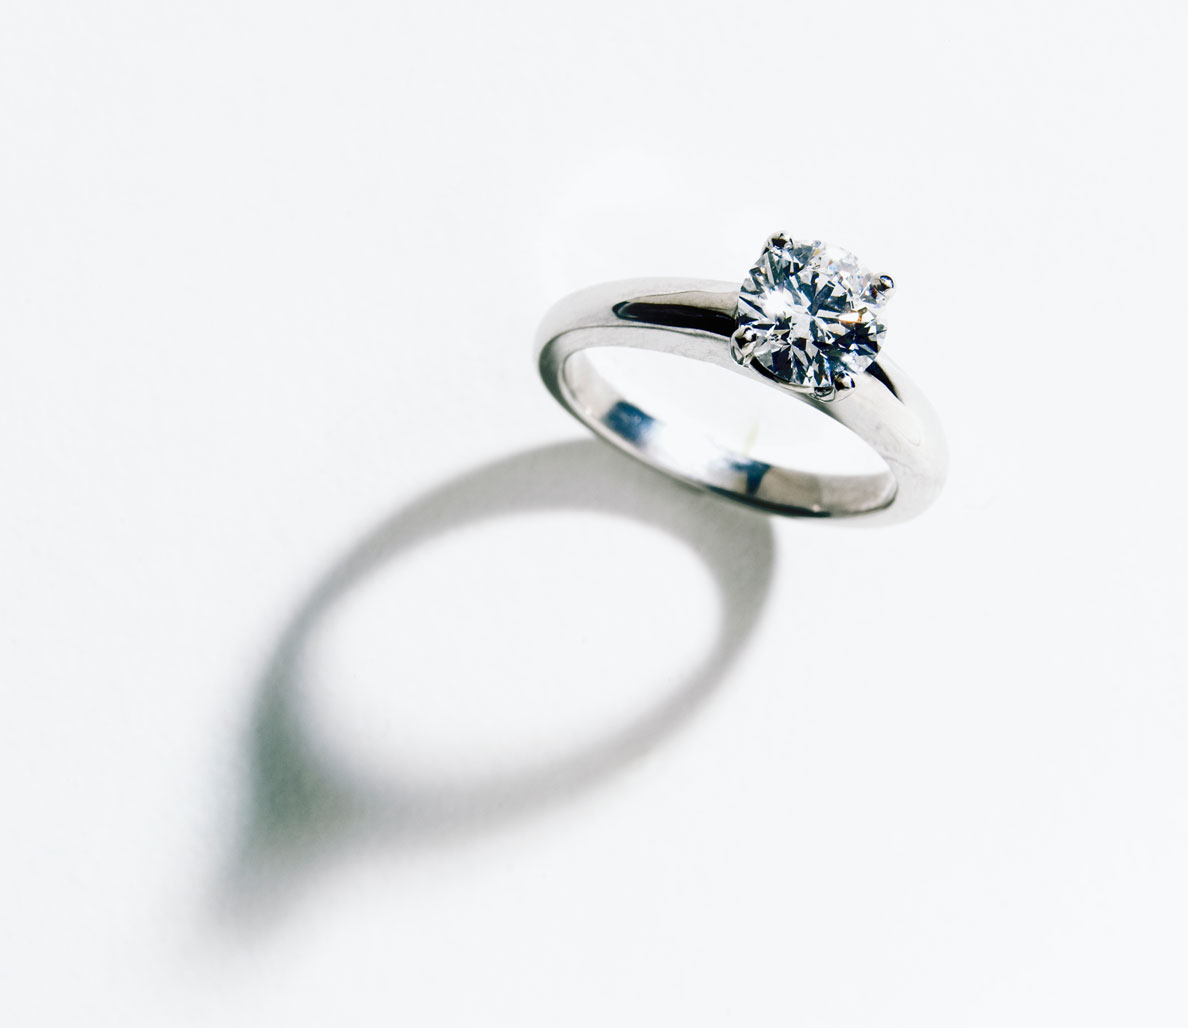 Engagement ring price for What should a wedding ring cost